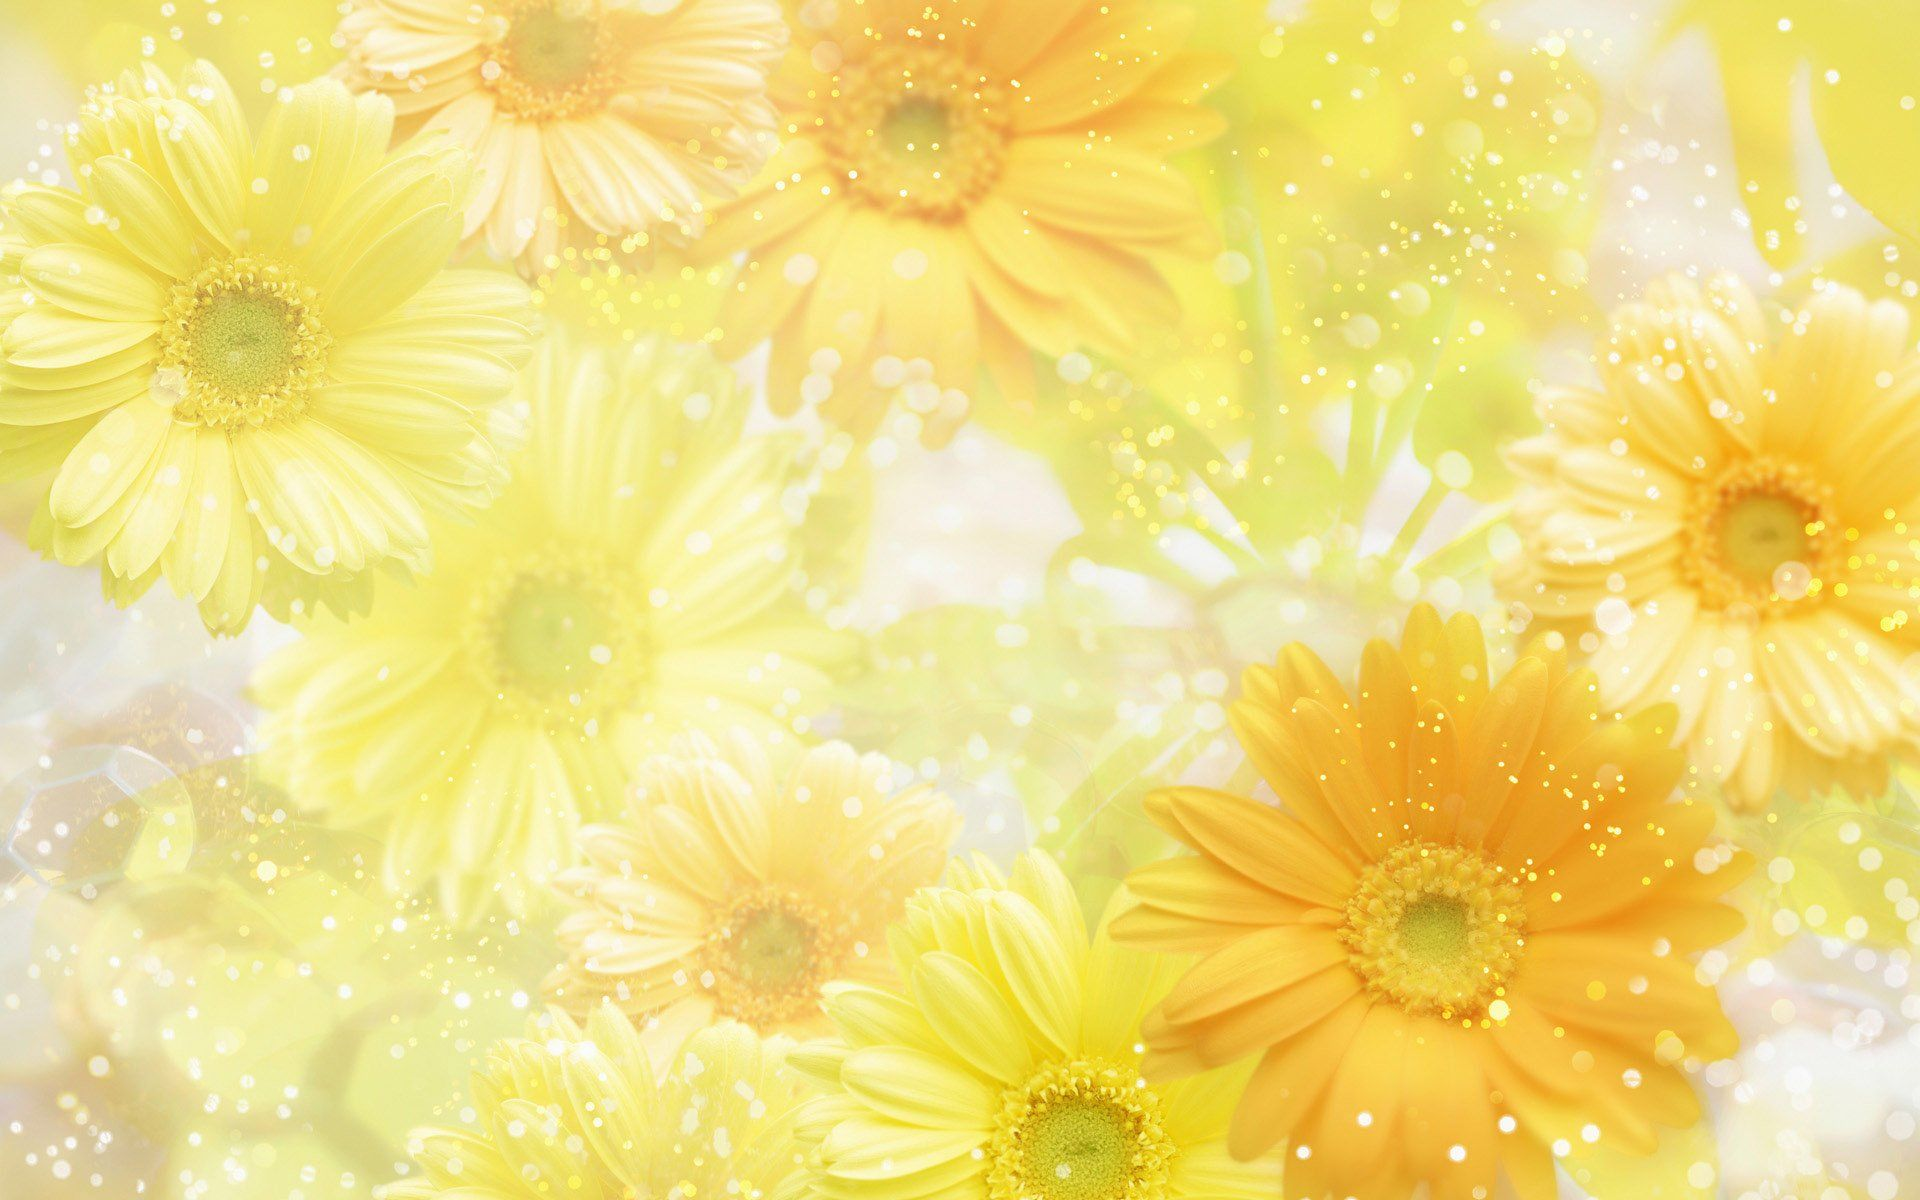 Image detail for Wallpaper, background, yellow, nature